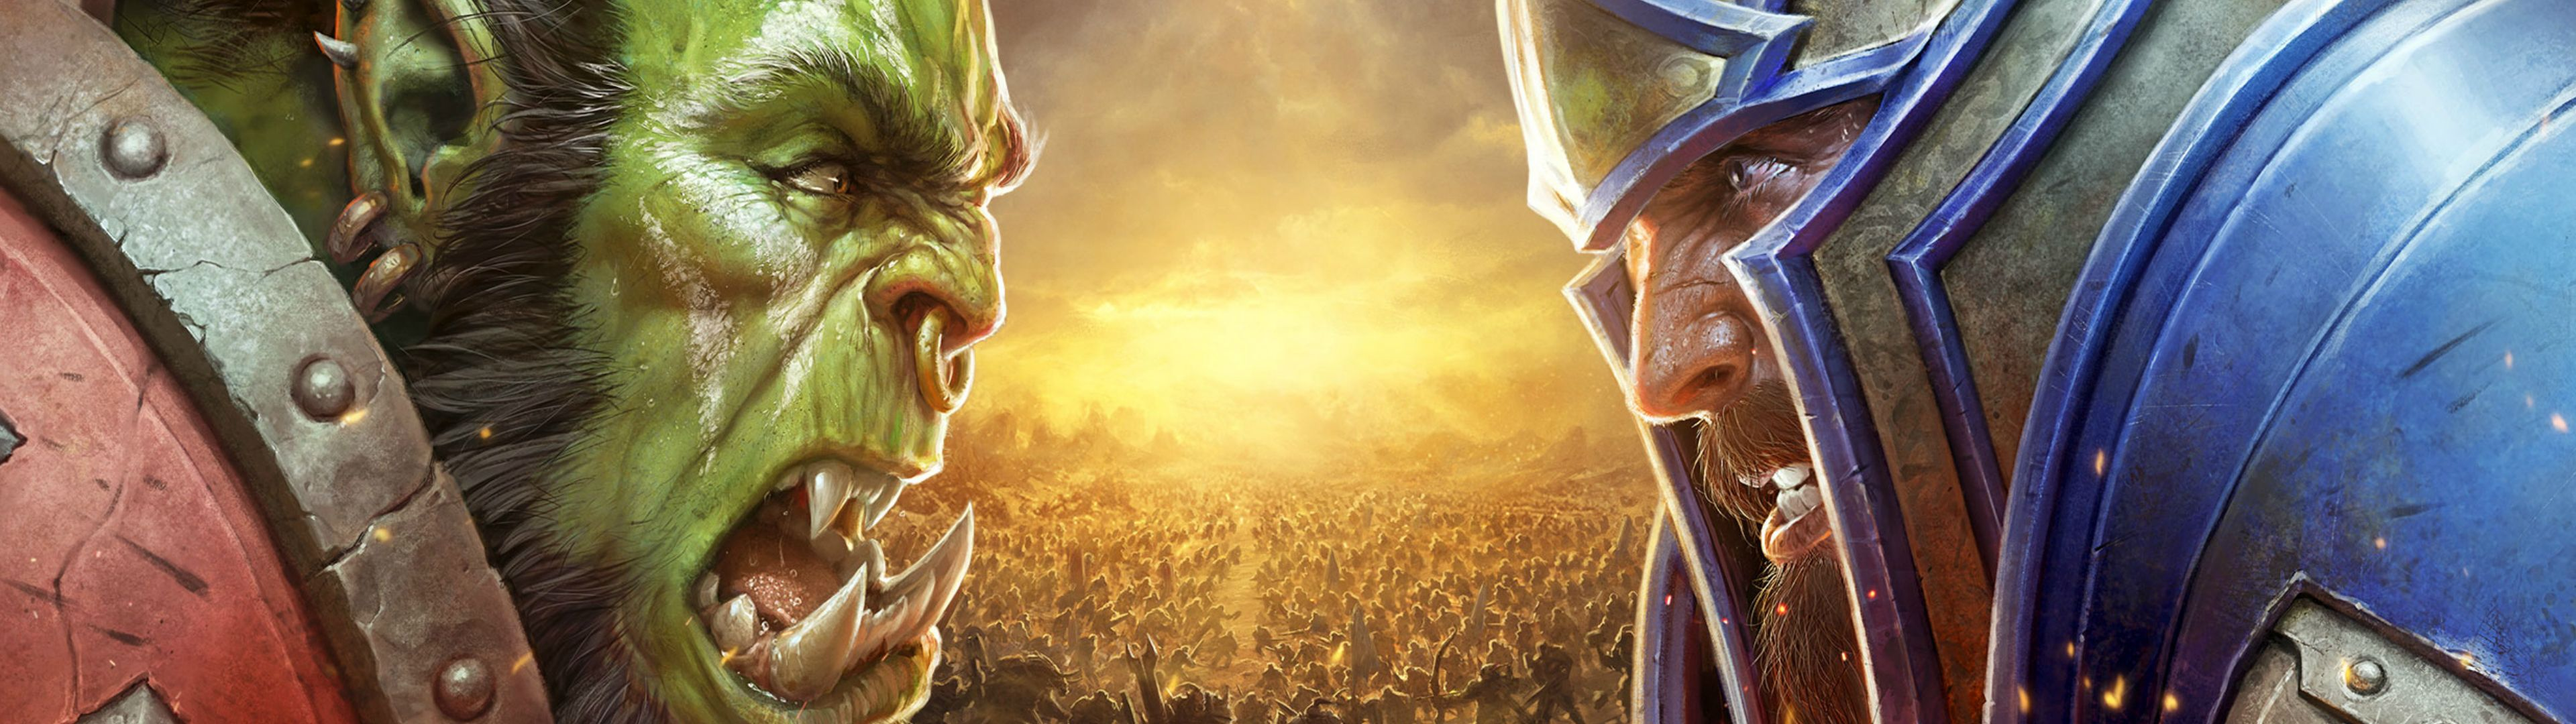 Bfa Dual Monitor Wallpaper 3840x1080 Worldofwarcraft Blizzard